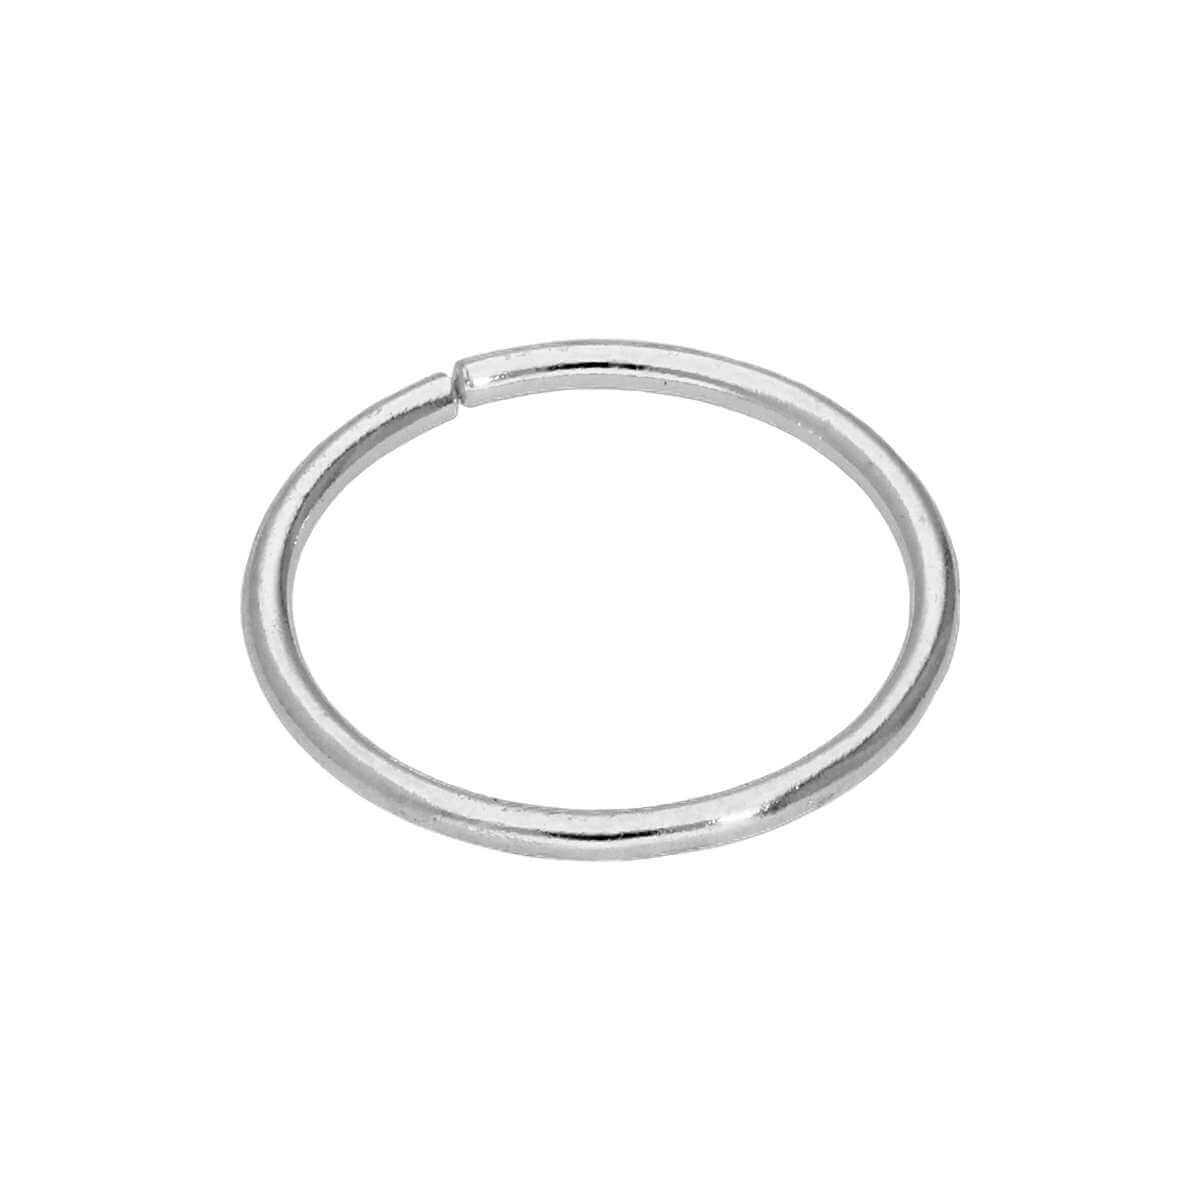 9ct White Gold 22Ga Plain 6mm Nose Ring